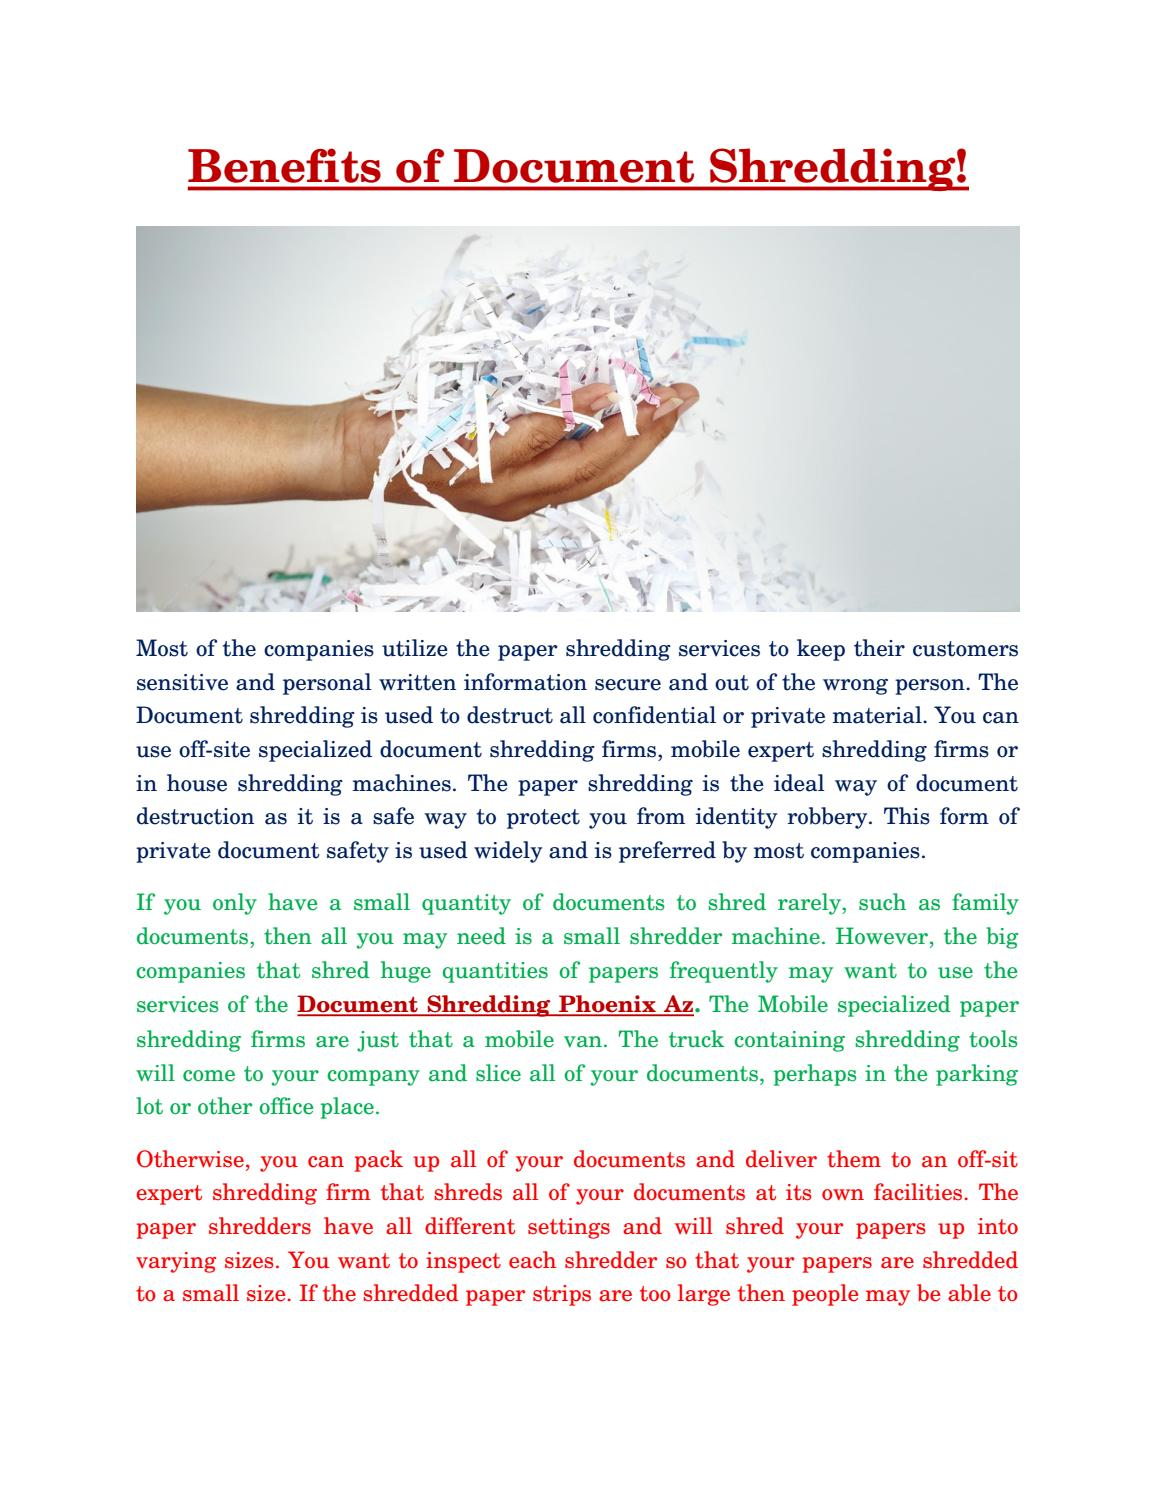 Benefits of document shredding security data destruction by Security